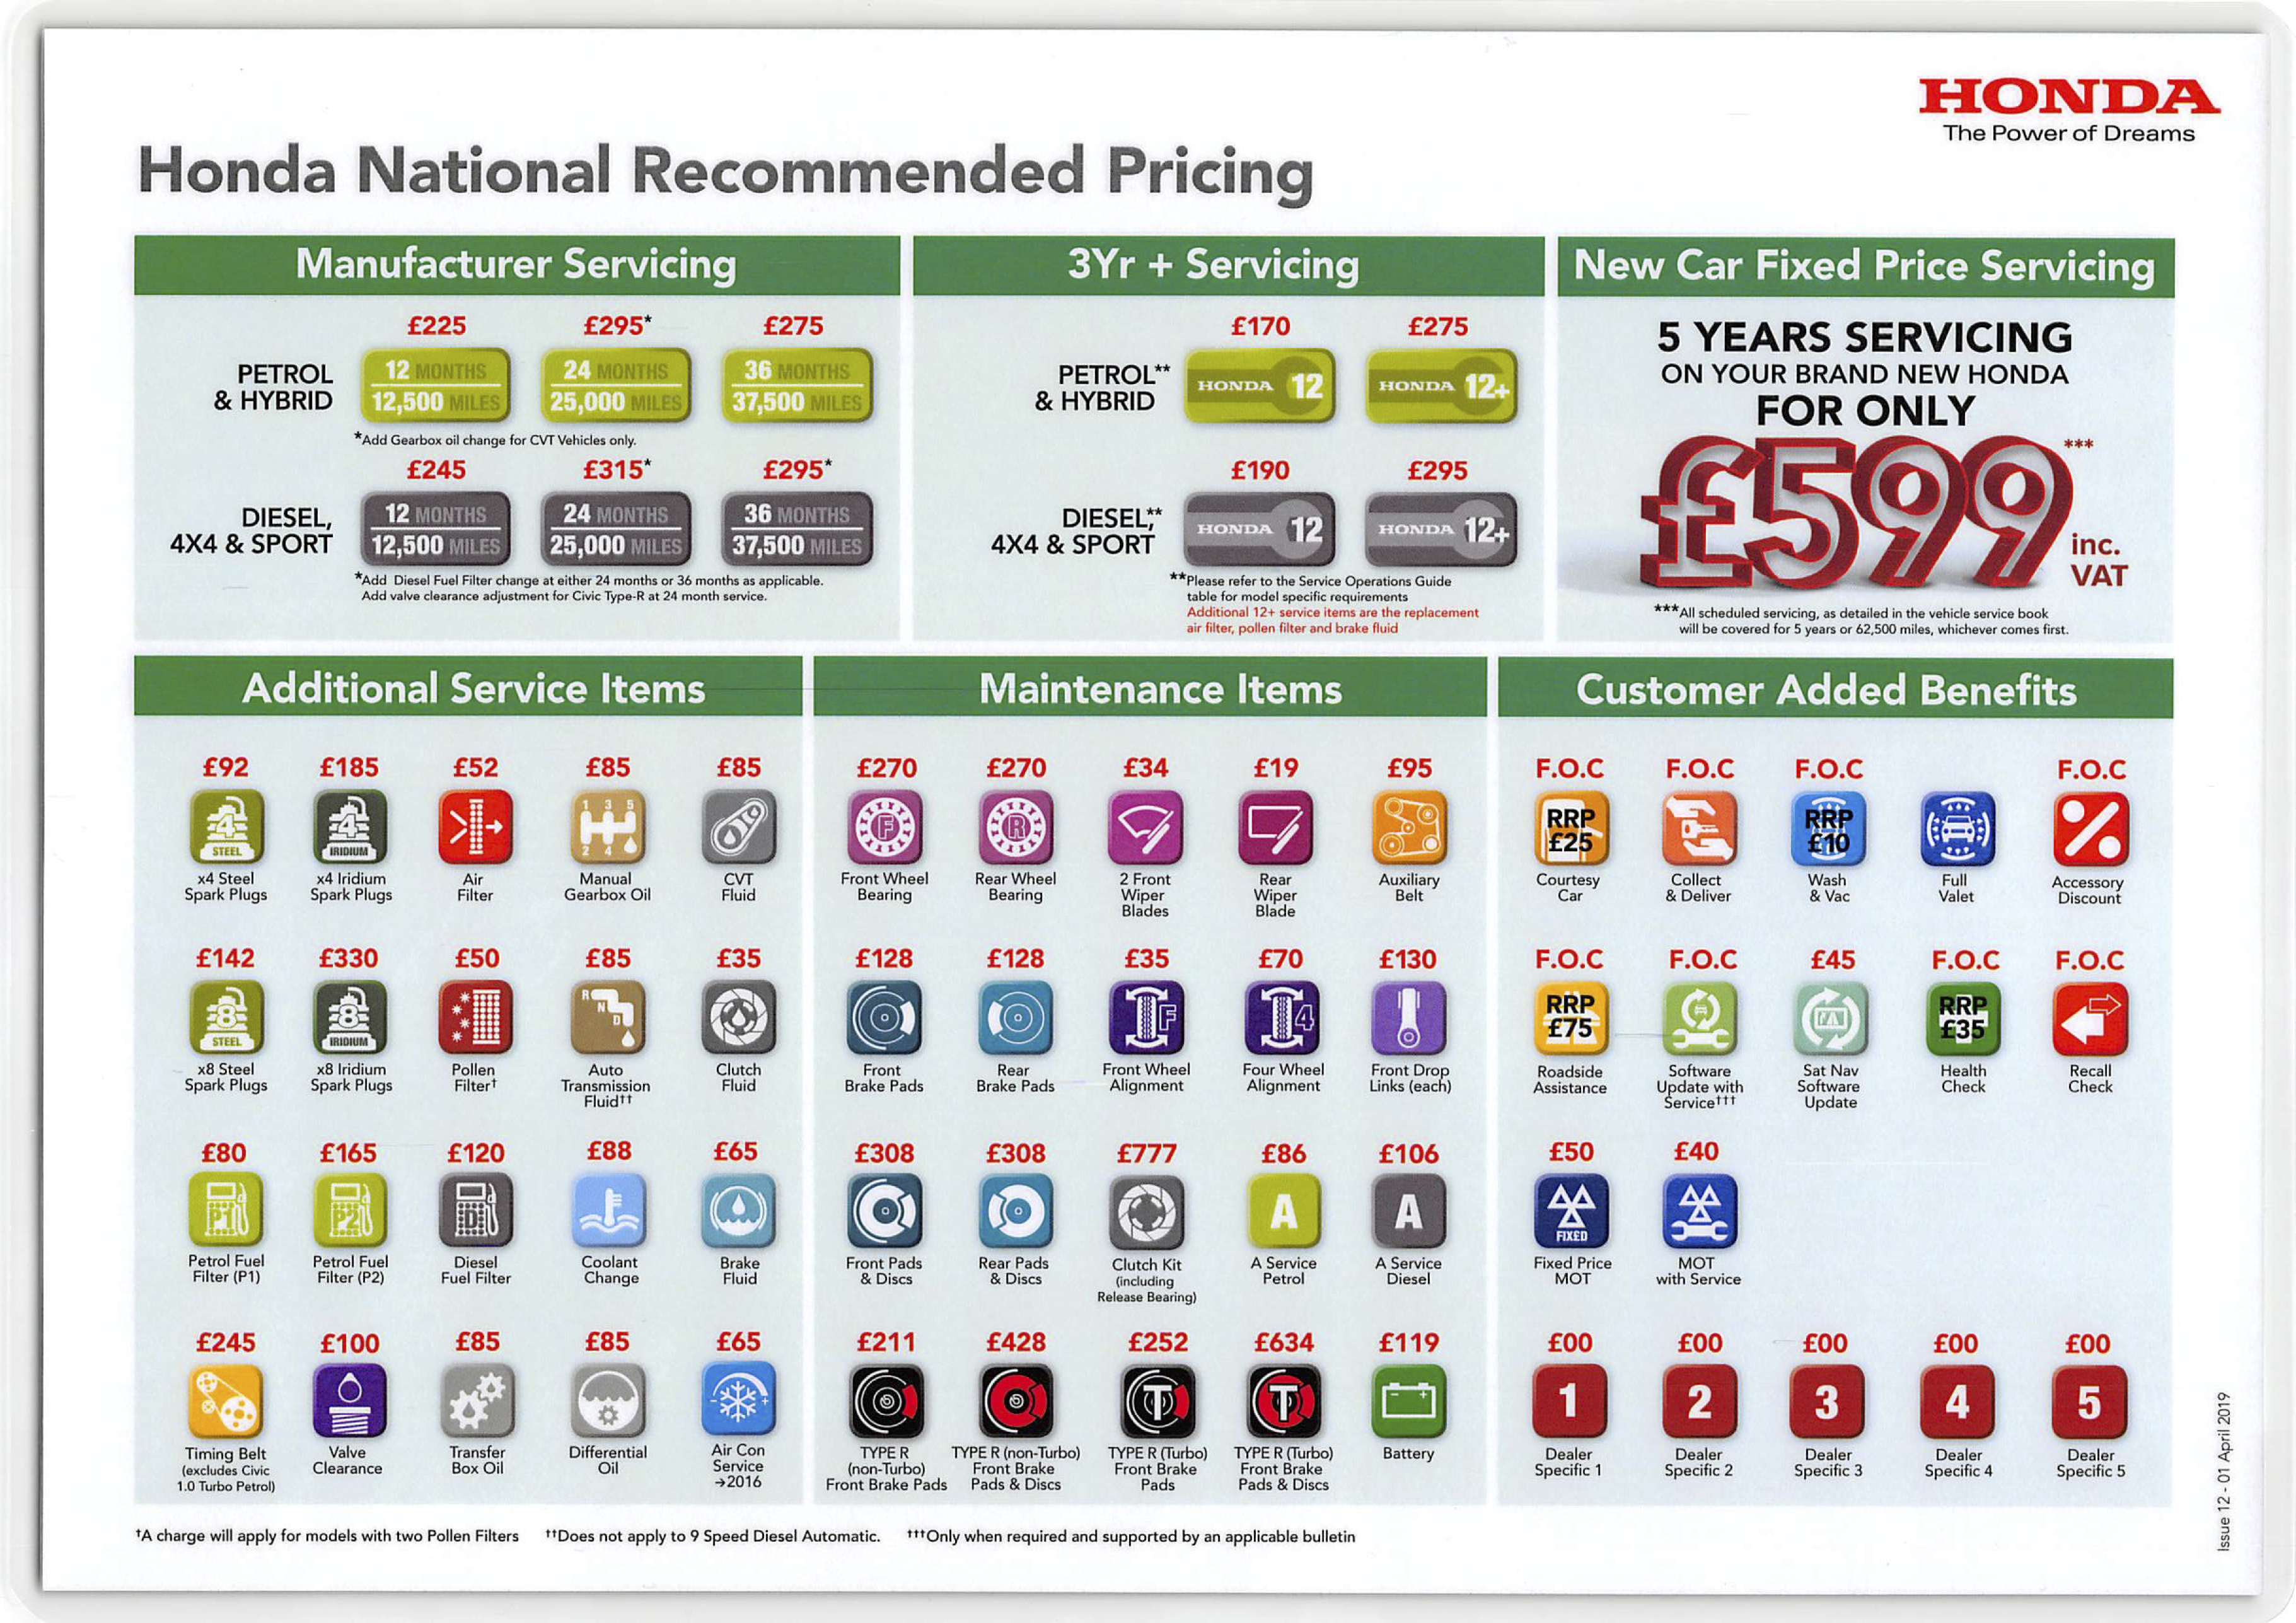 honda-national-recommended-pricing.png